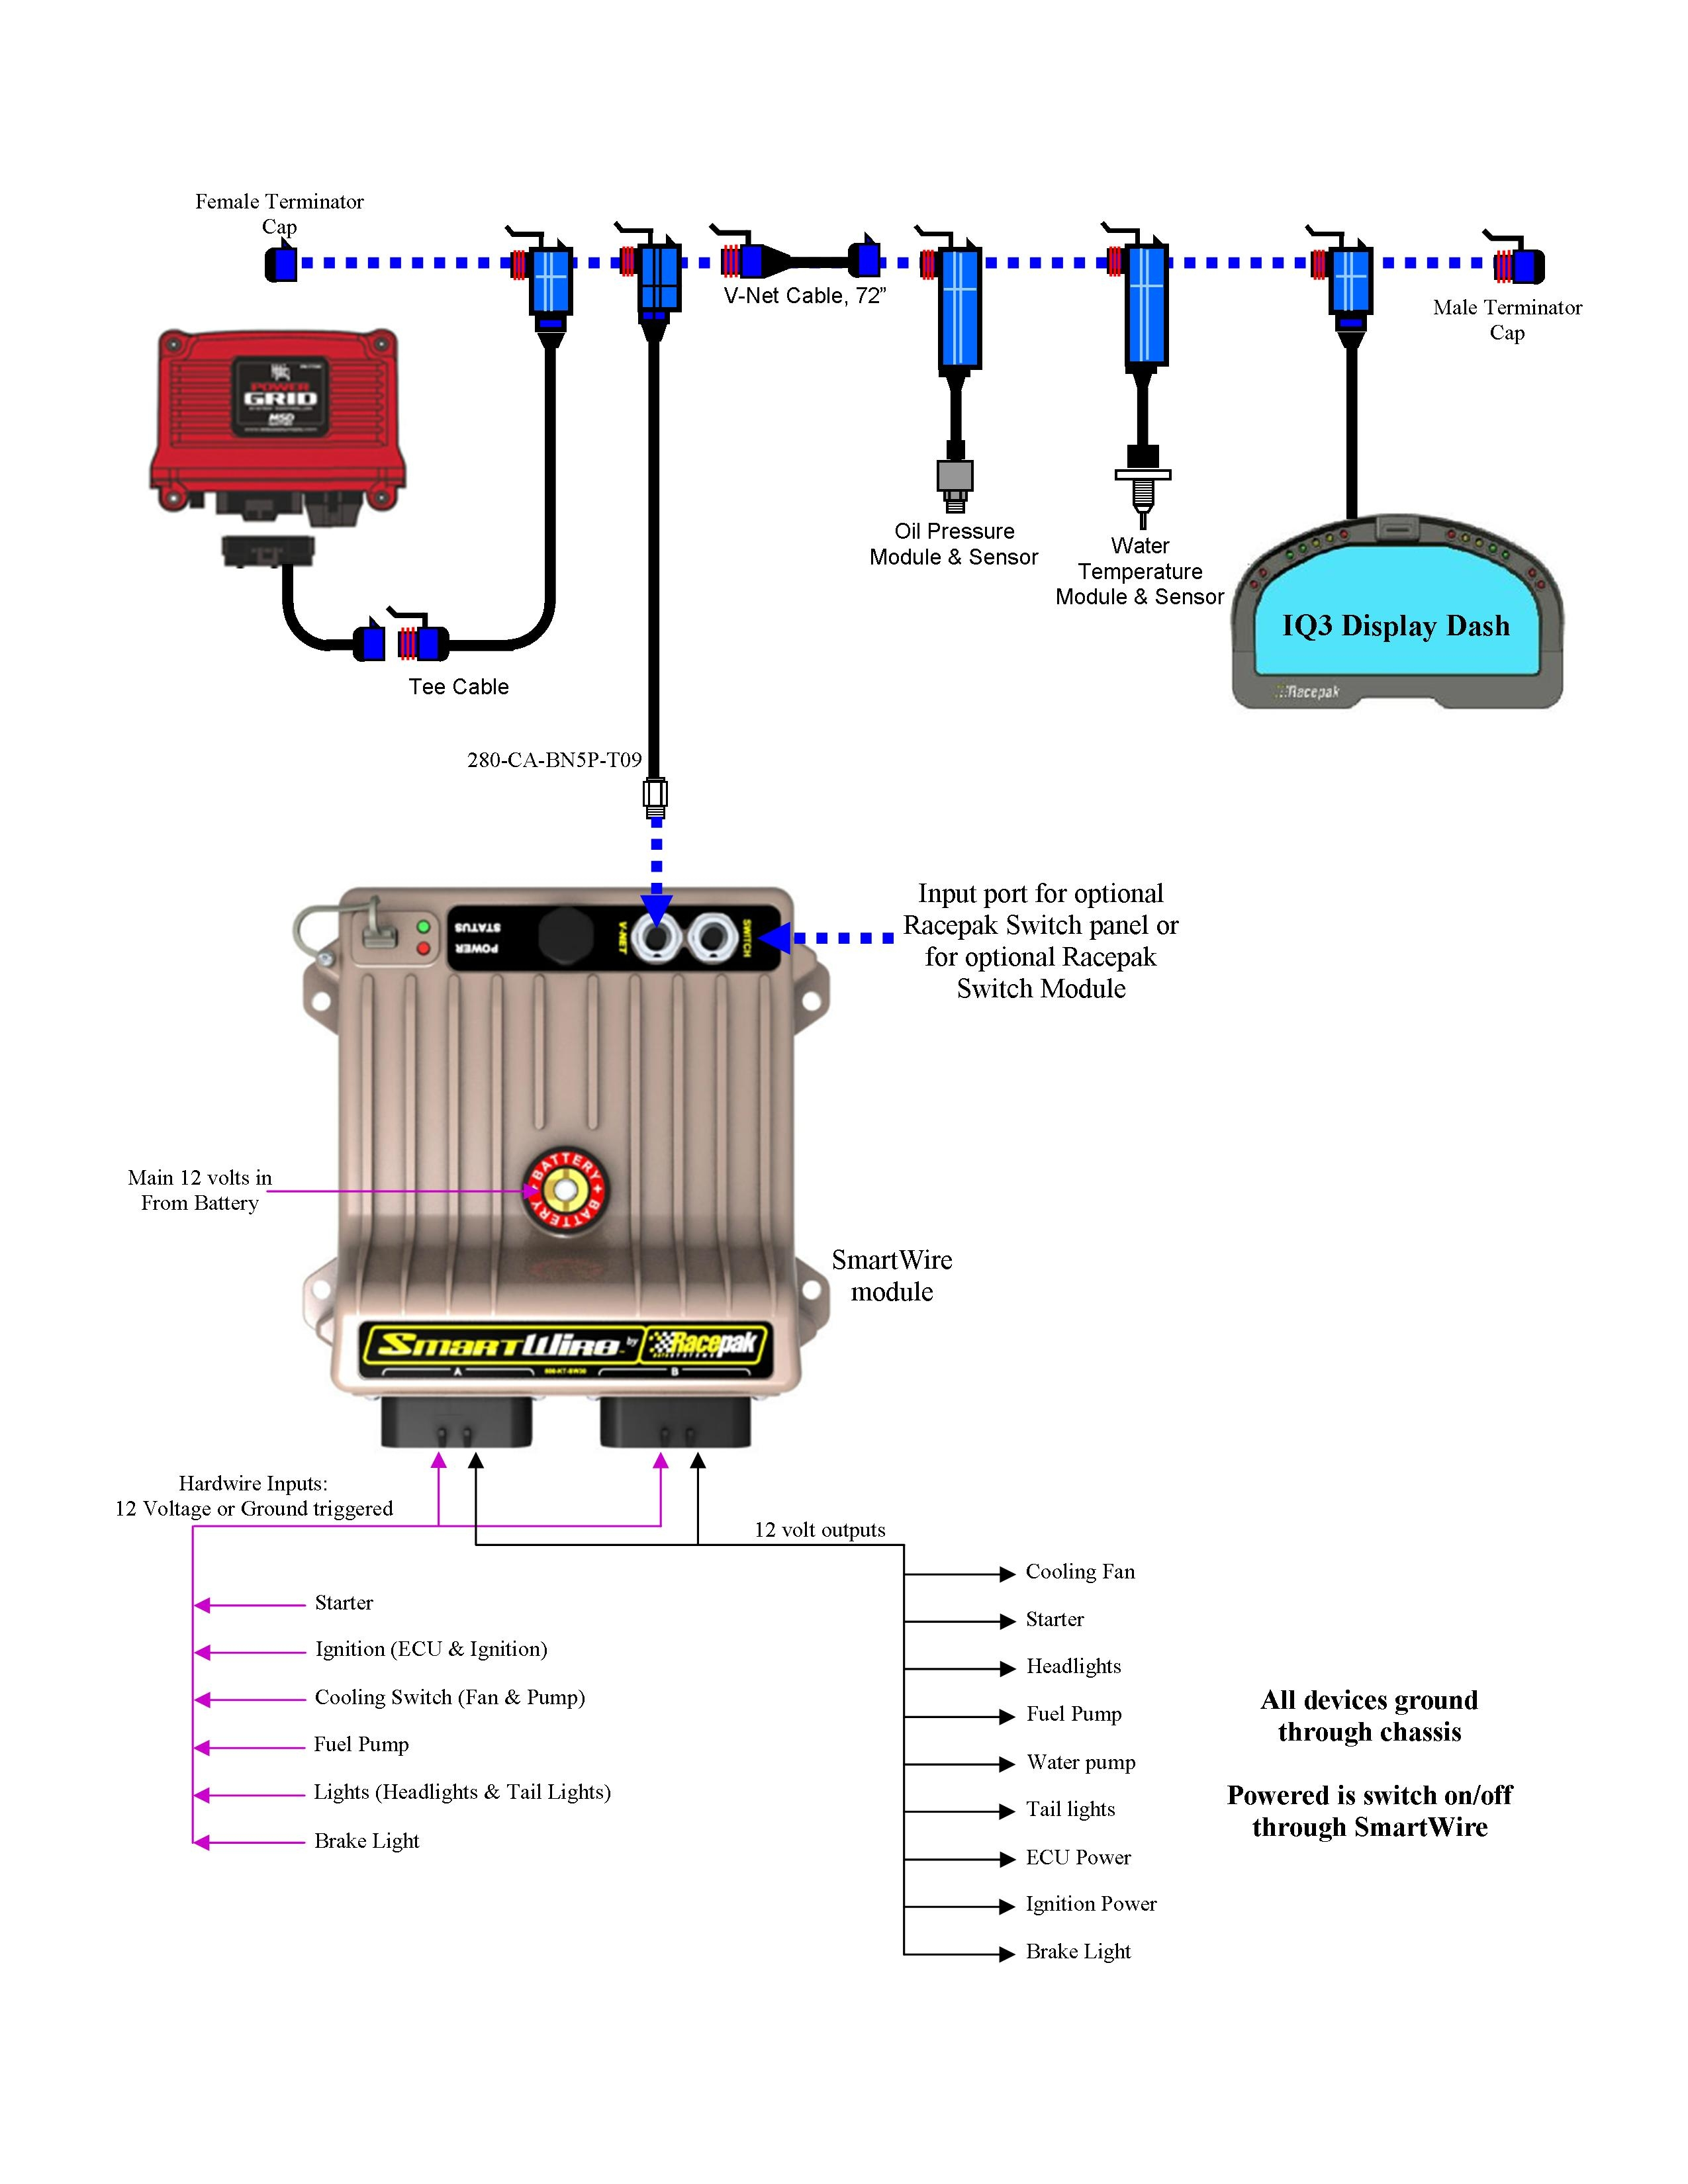 MSD Smartwire racepak wiring diagram msd 7al wiring \u2022 wiring diagrams j squared co Terminator Time Loop Diagram at couponss.co